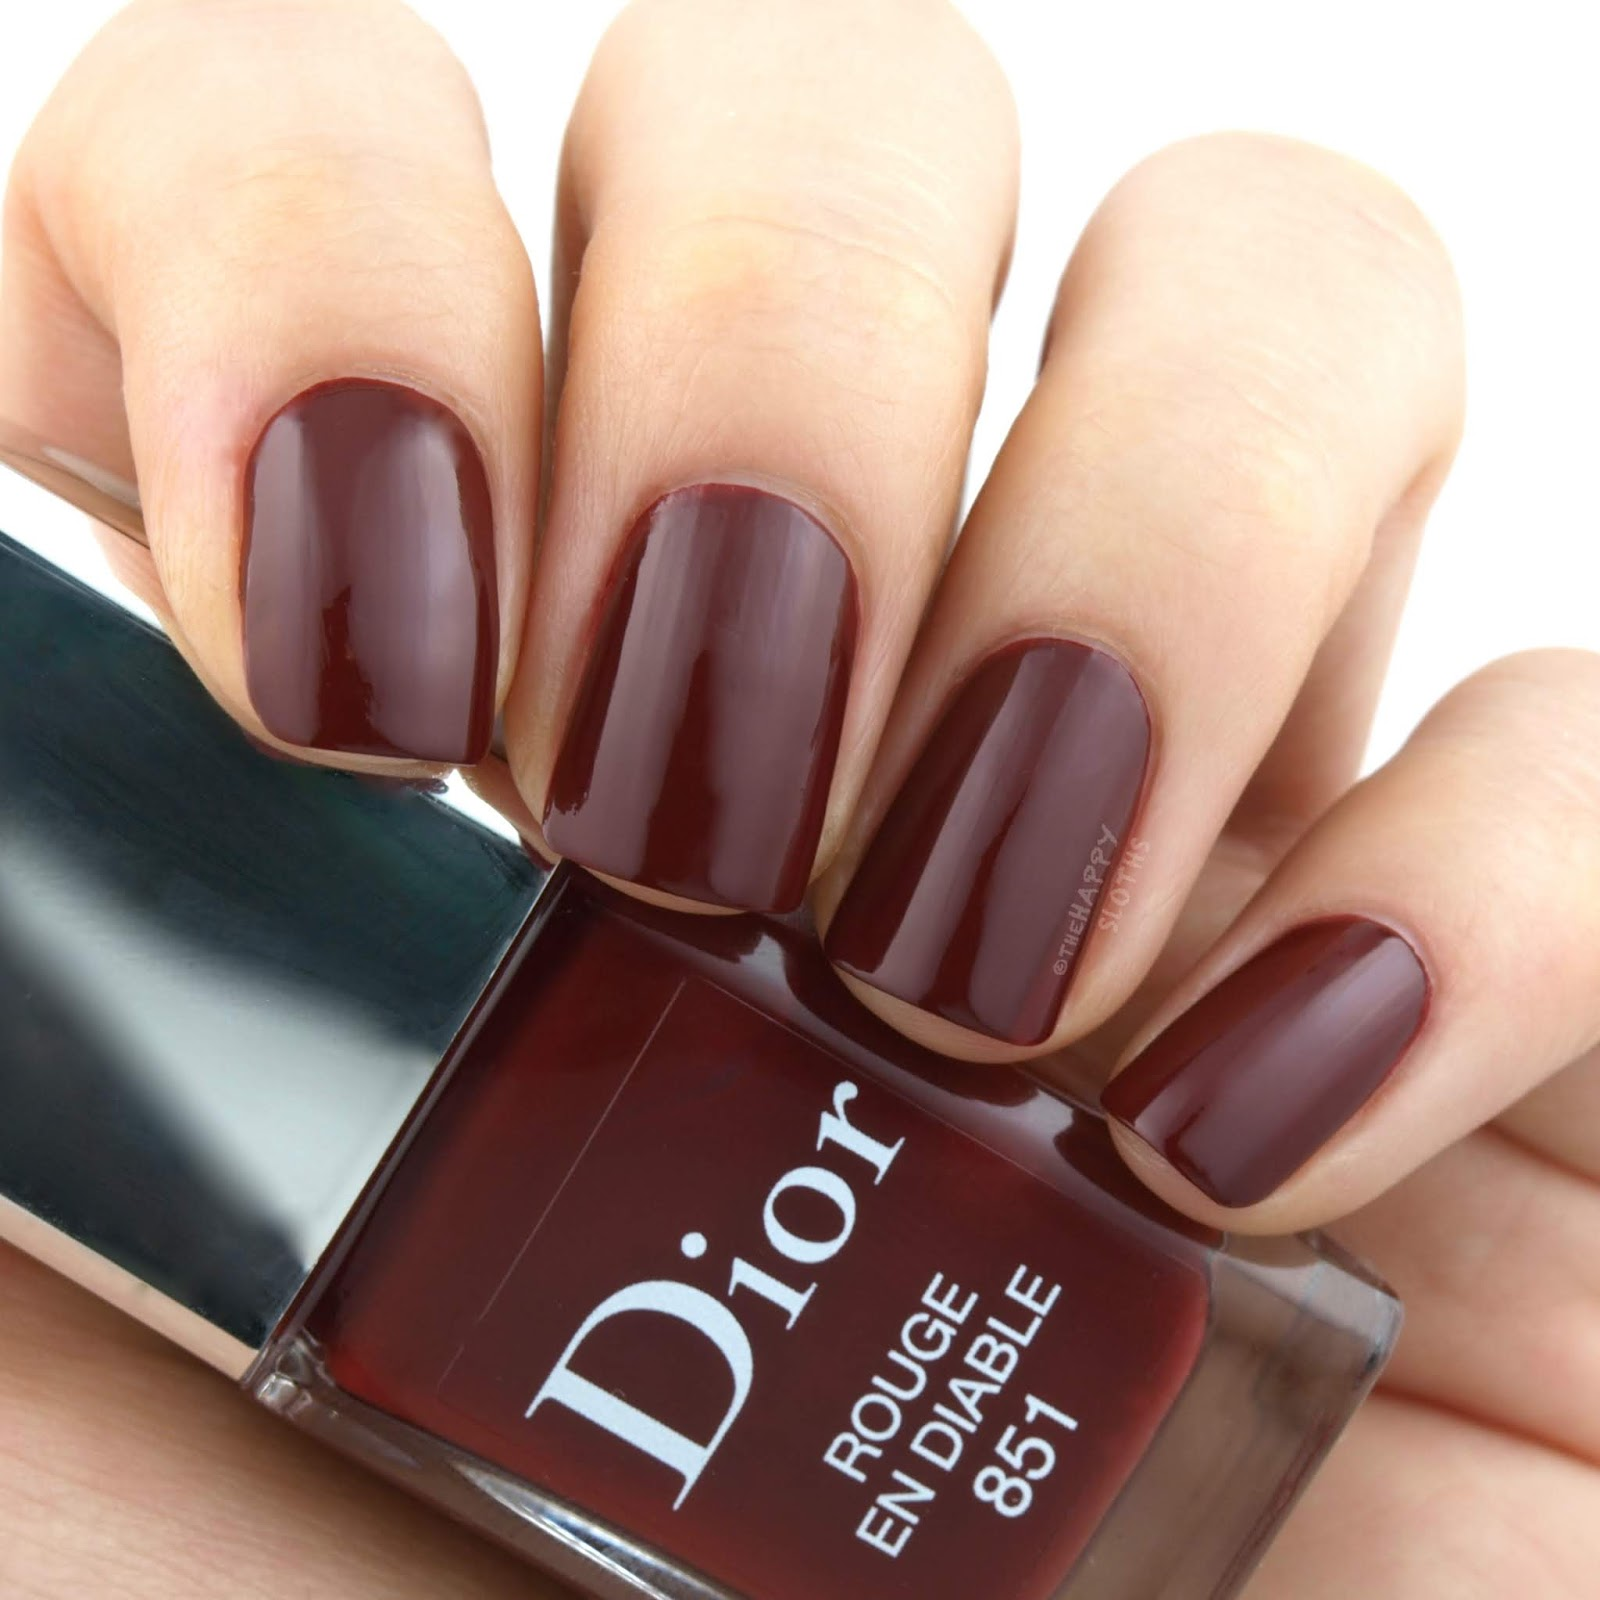 "Dior Fall 2018 Dior en Diable Collection | Dior Vernis in ""851 Rouge en Diable"": Review and Swatches"